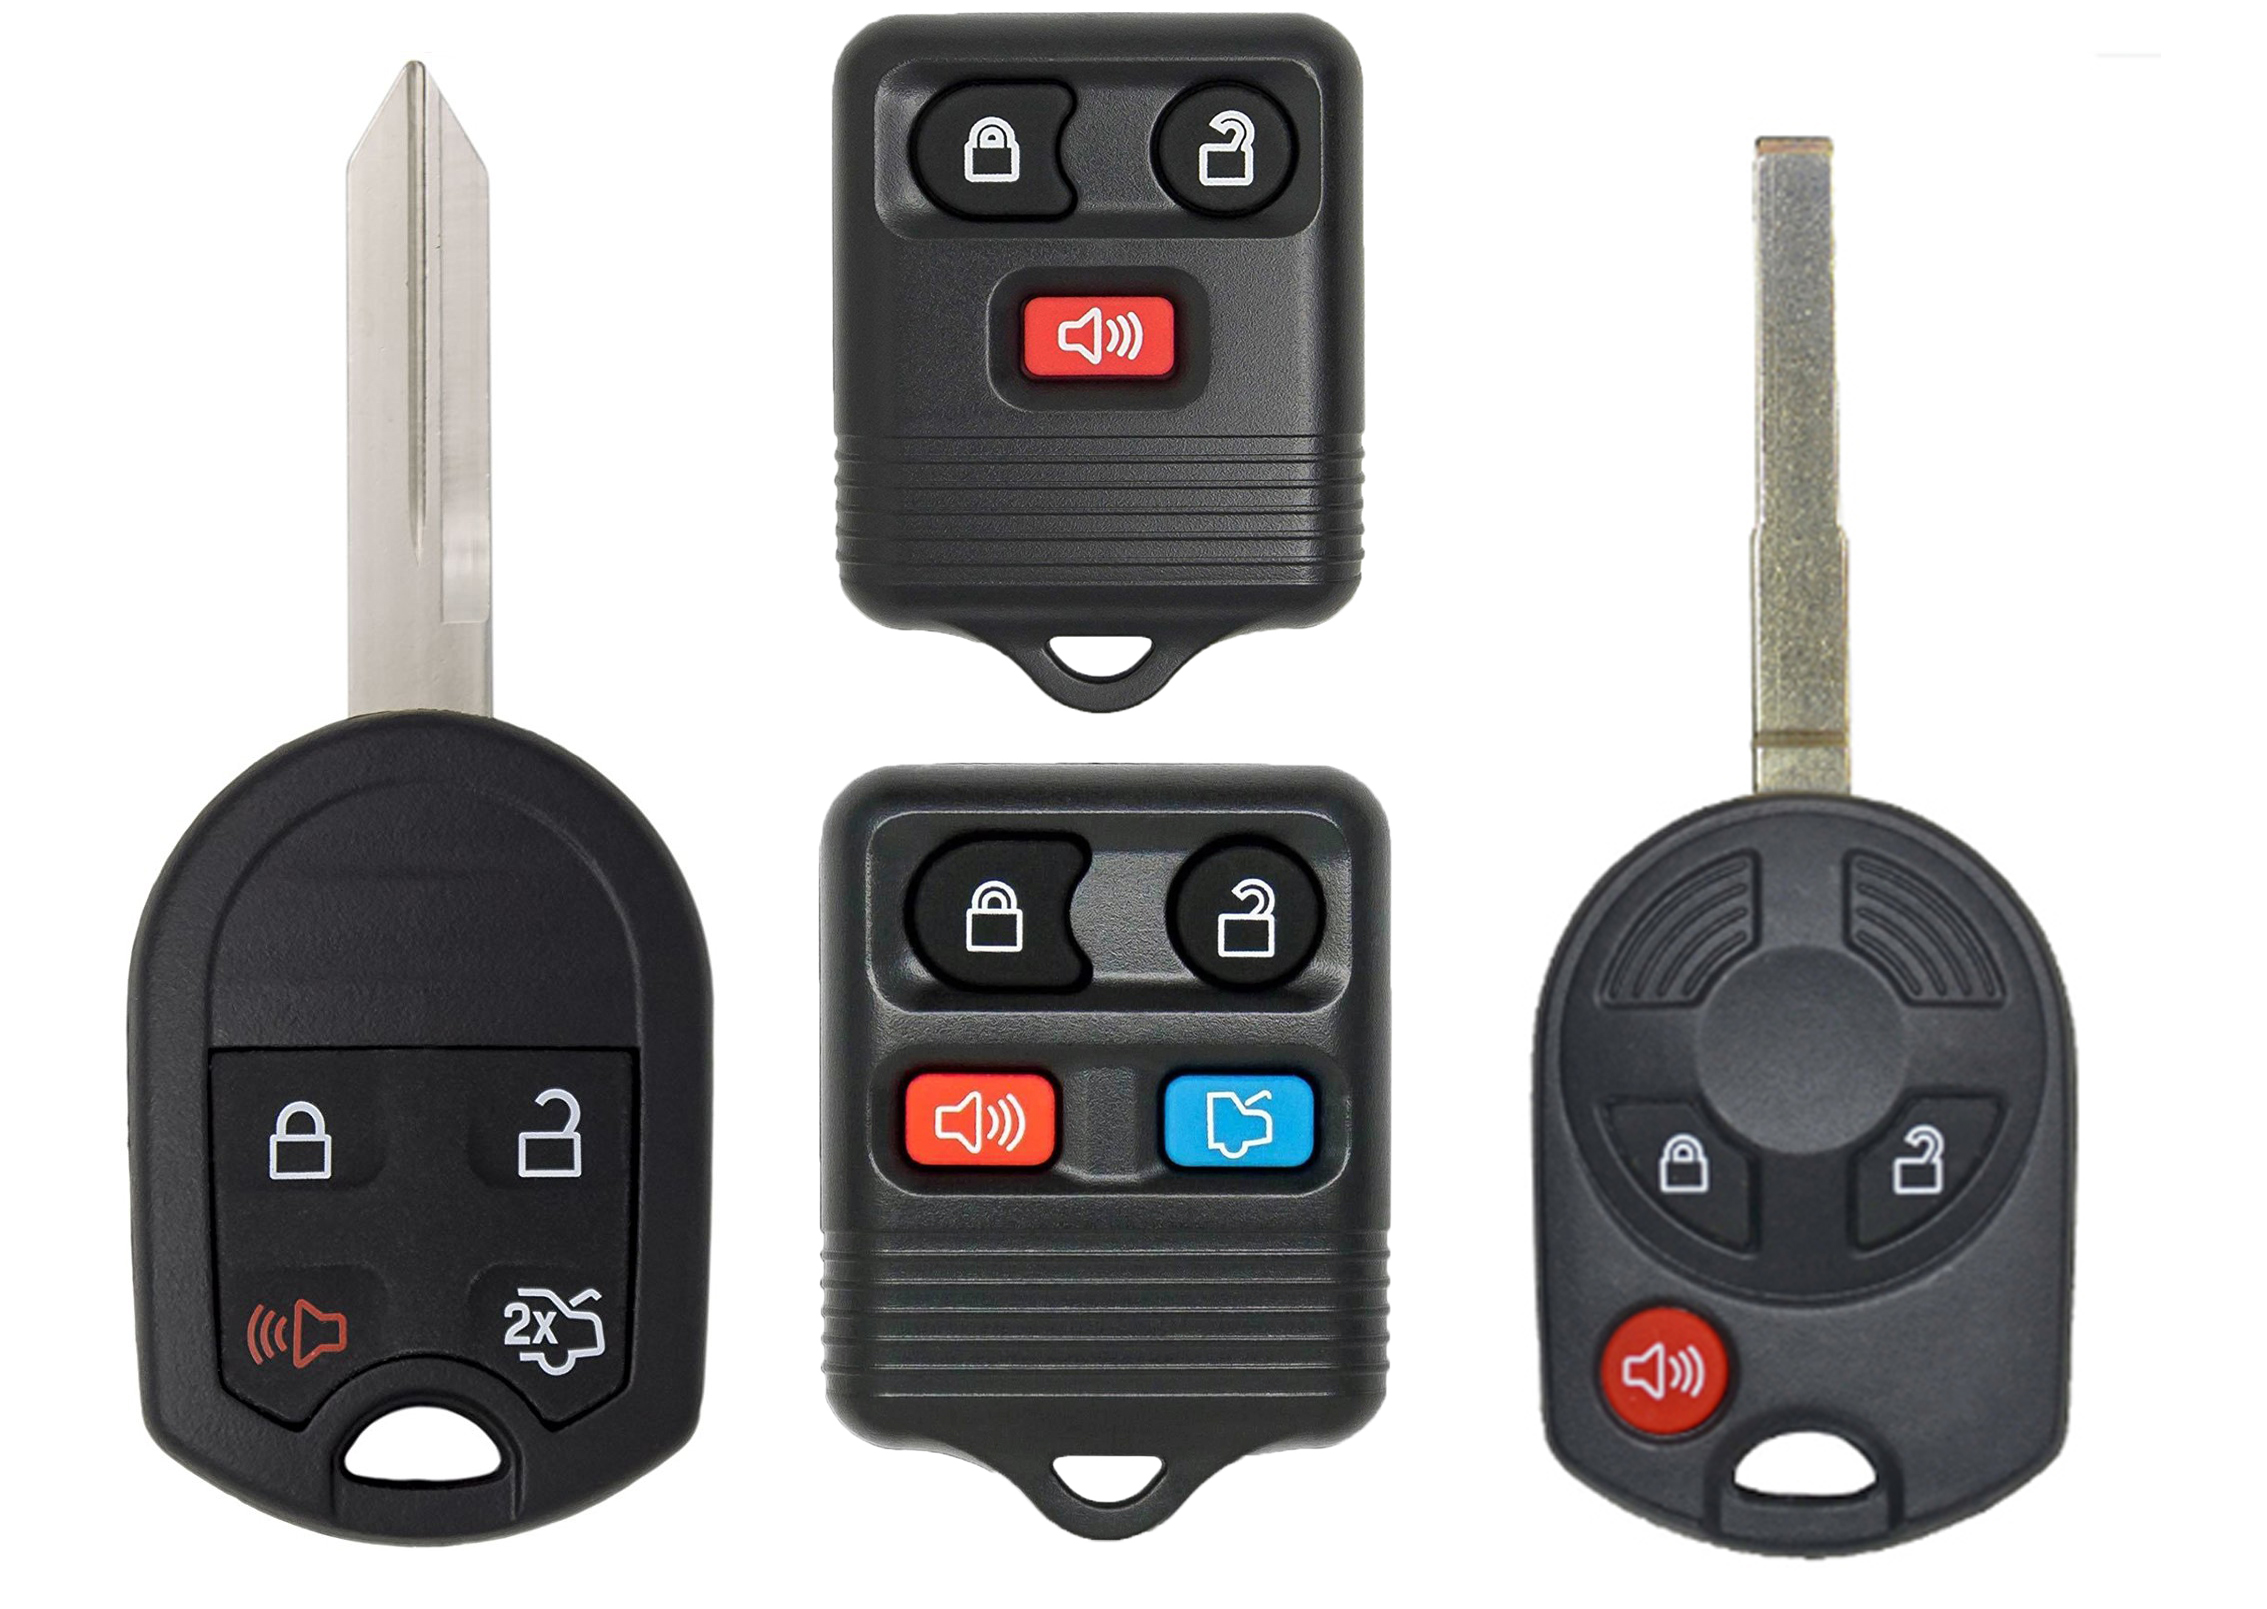 Remote Key Replacement Keys Remotes Car Alarm Security And Car